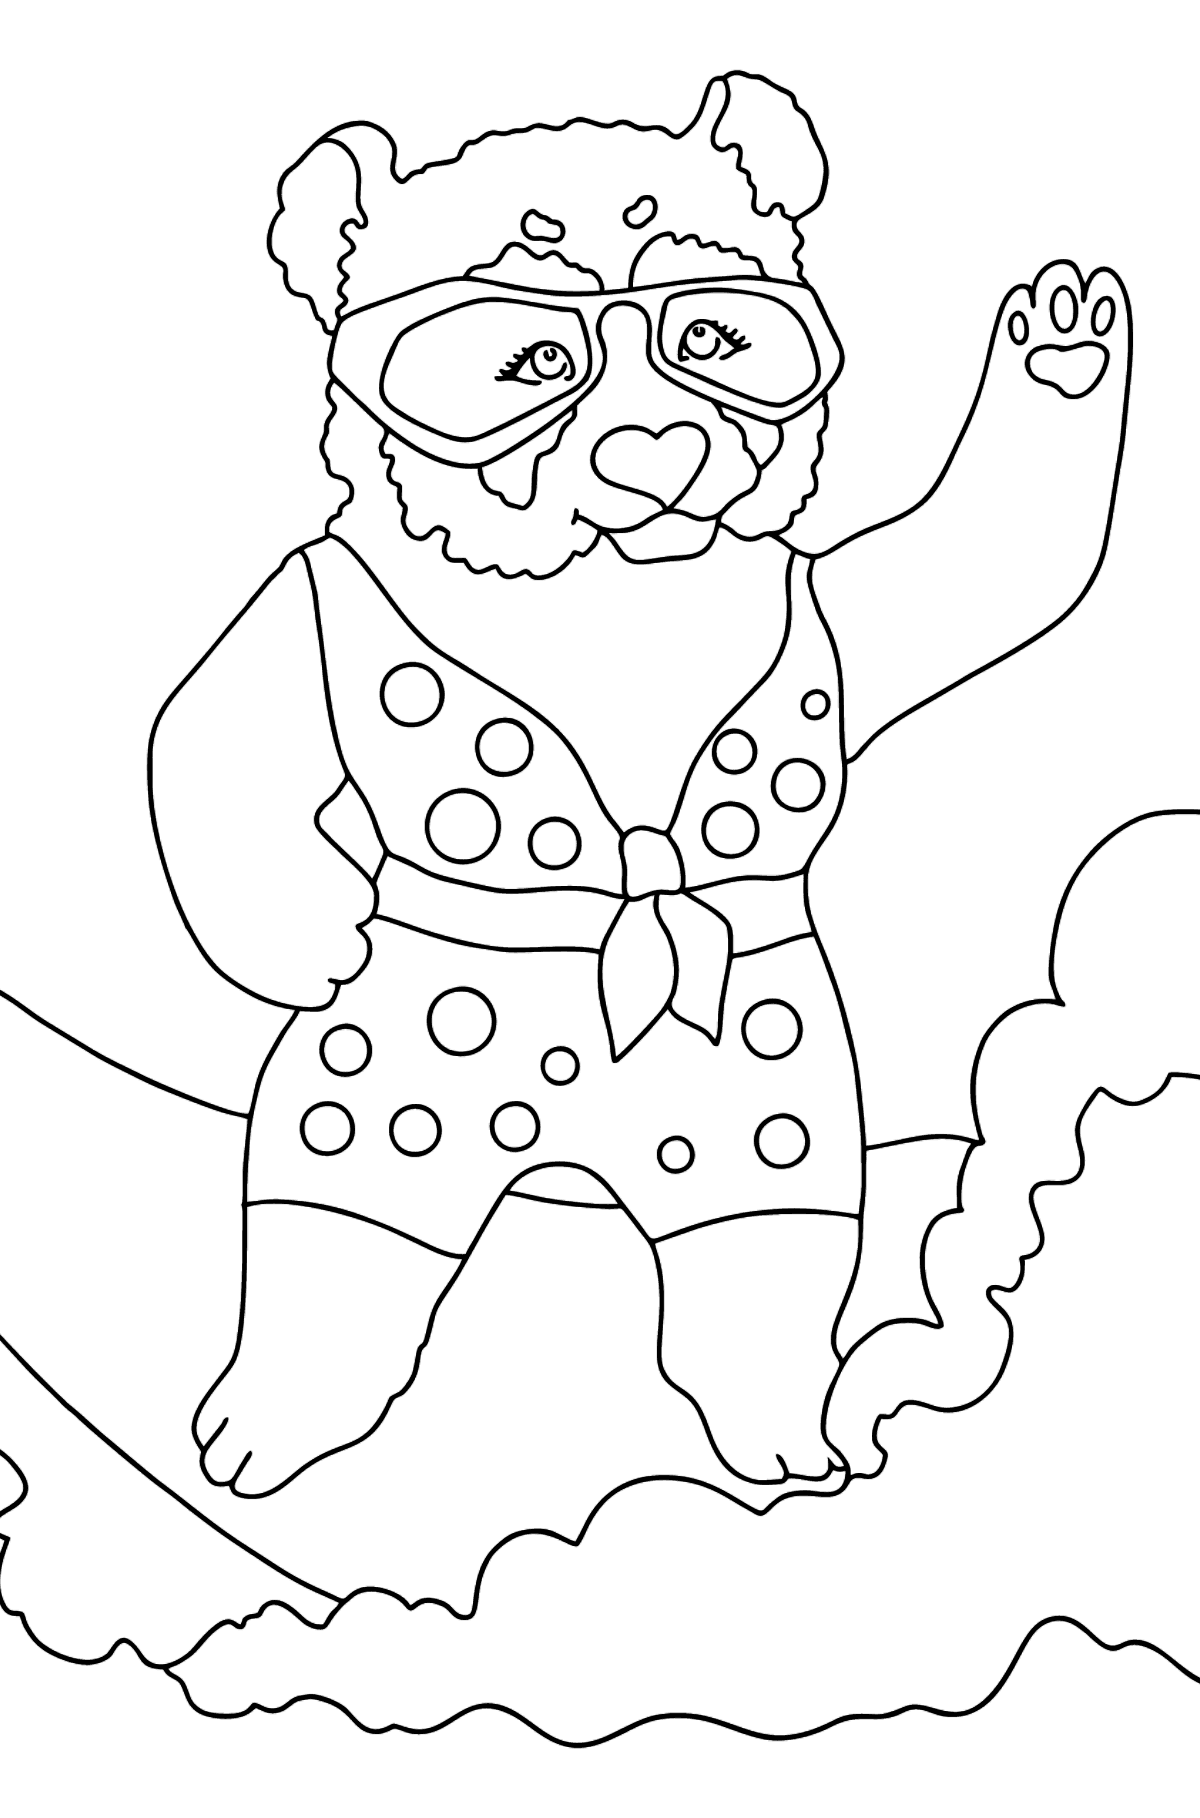 Coloring Page - A Panda is Catching a Wave - Coloring Pages for Kids